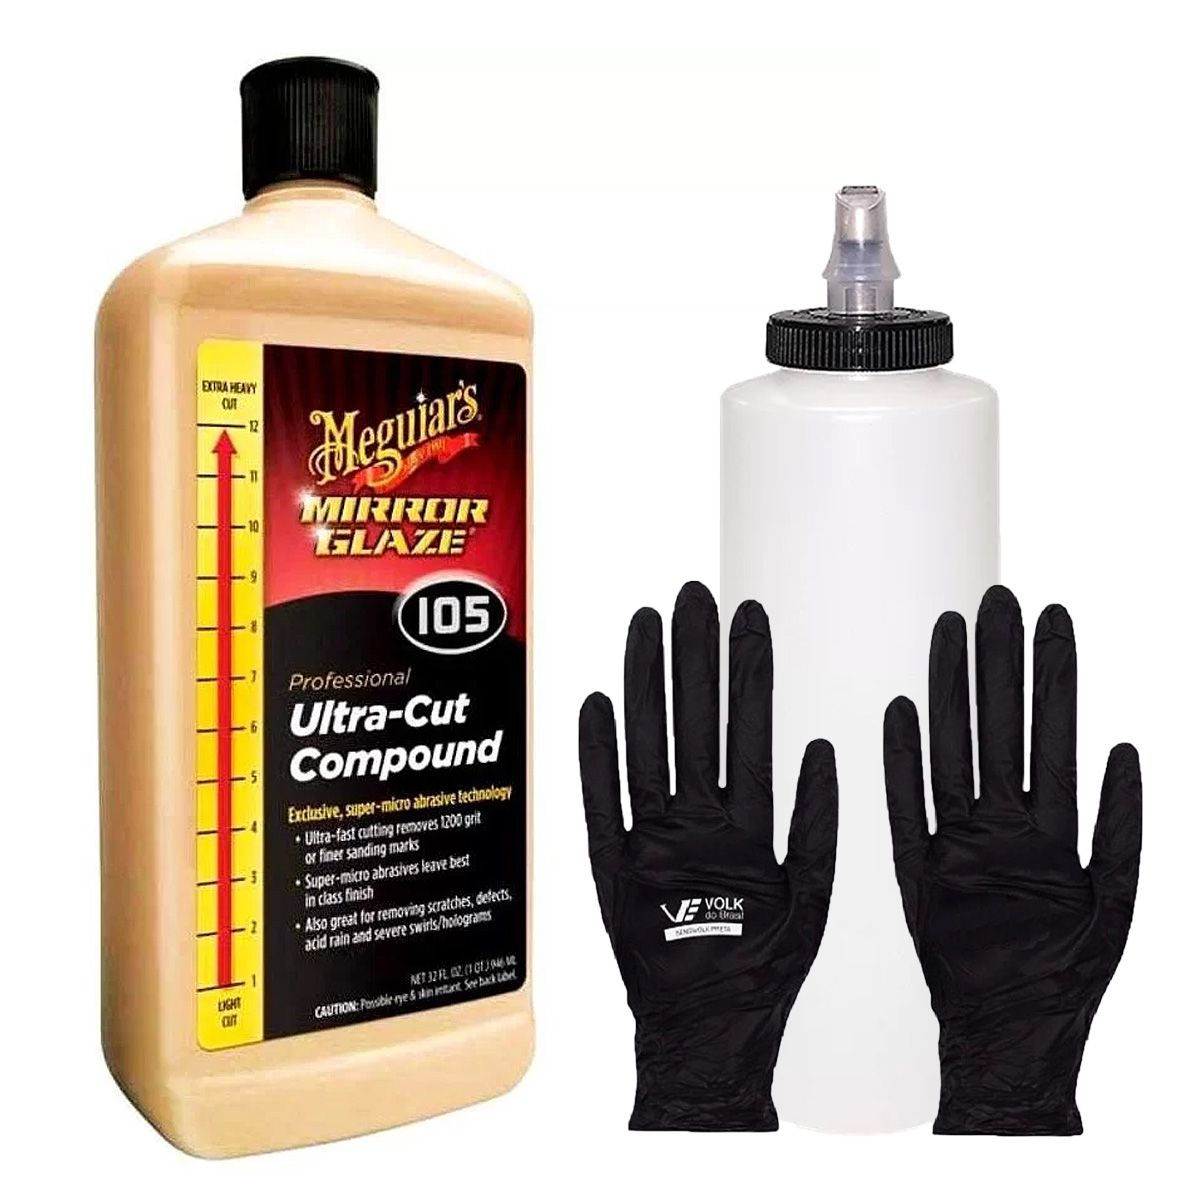 Kit Polidor Composto Ultra Cut Meguiars 946ml + Frasco Bico Dosador + Luva Black Slim Volk